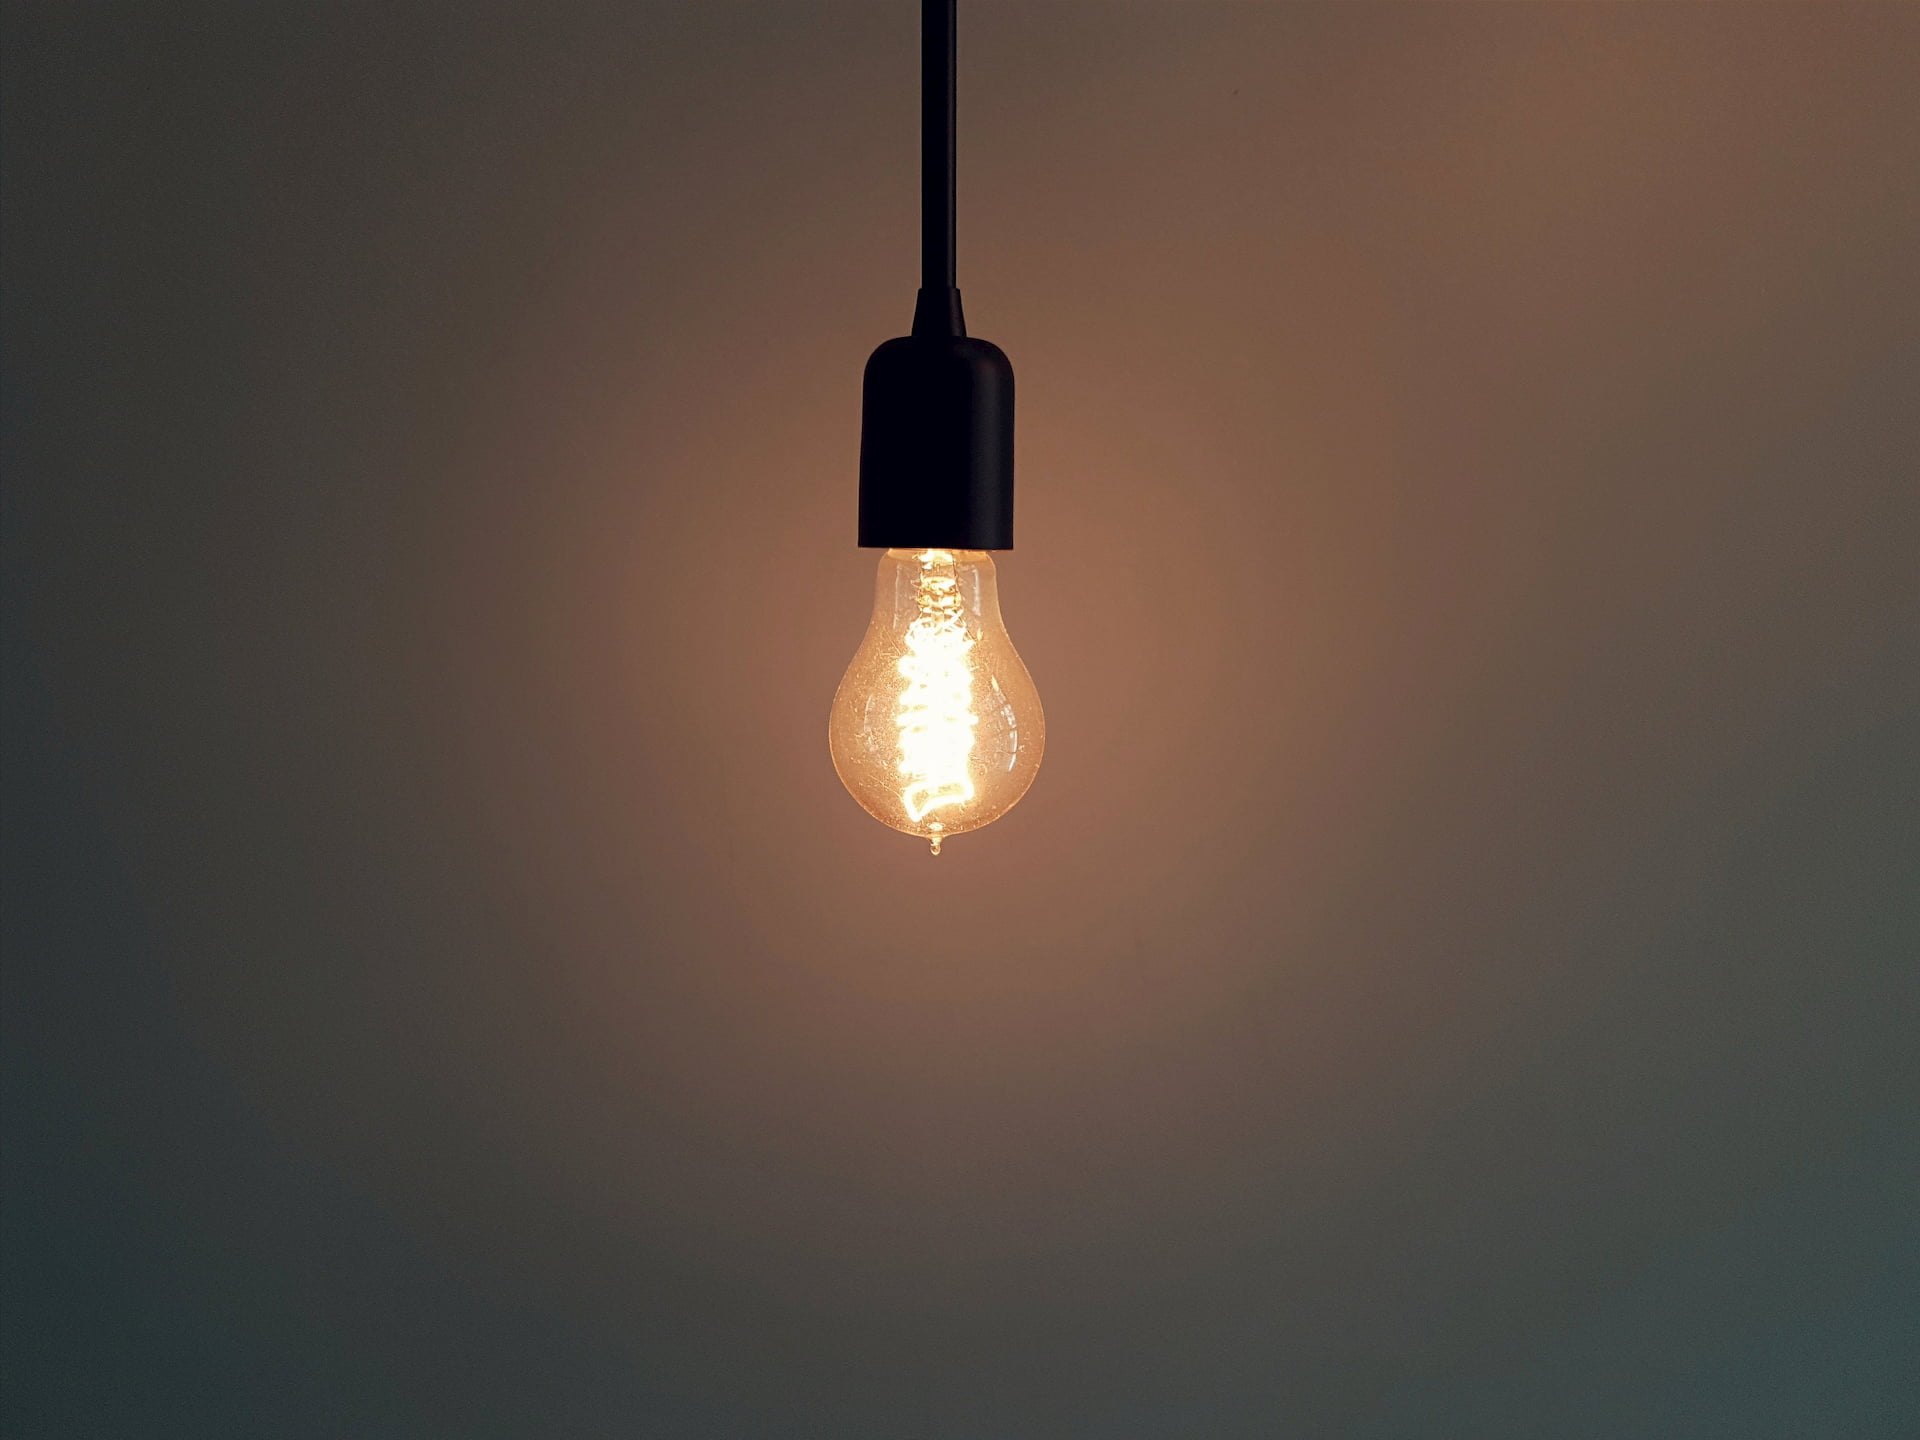 bright-bulb-dark-132340-resize.jpg